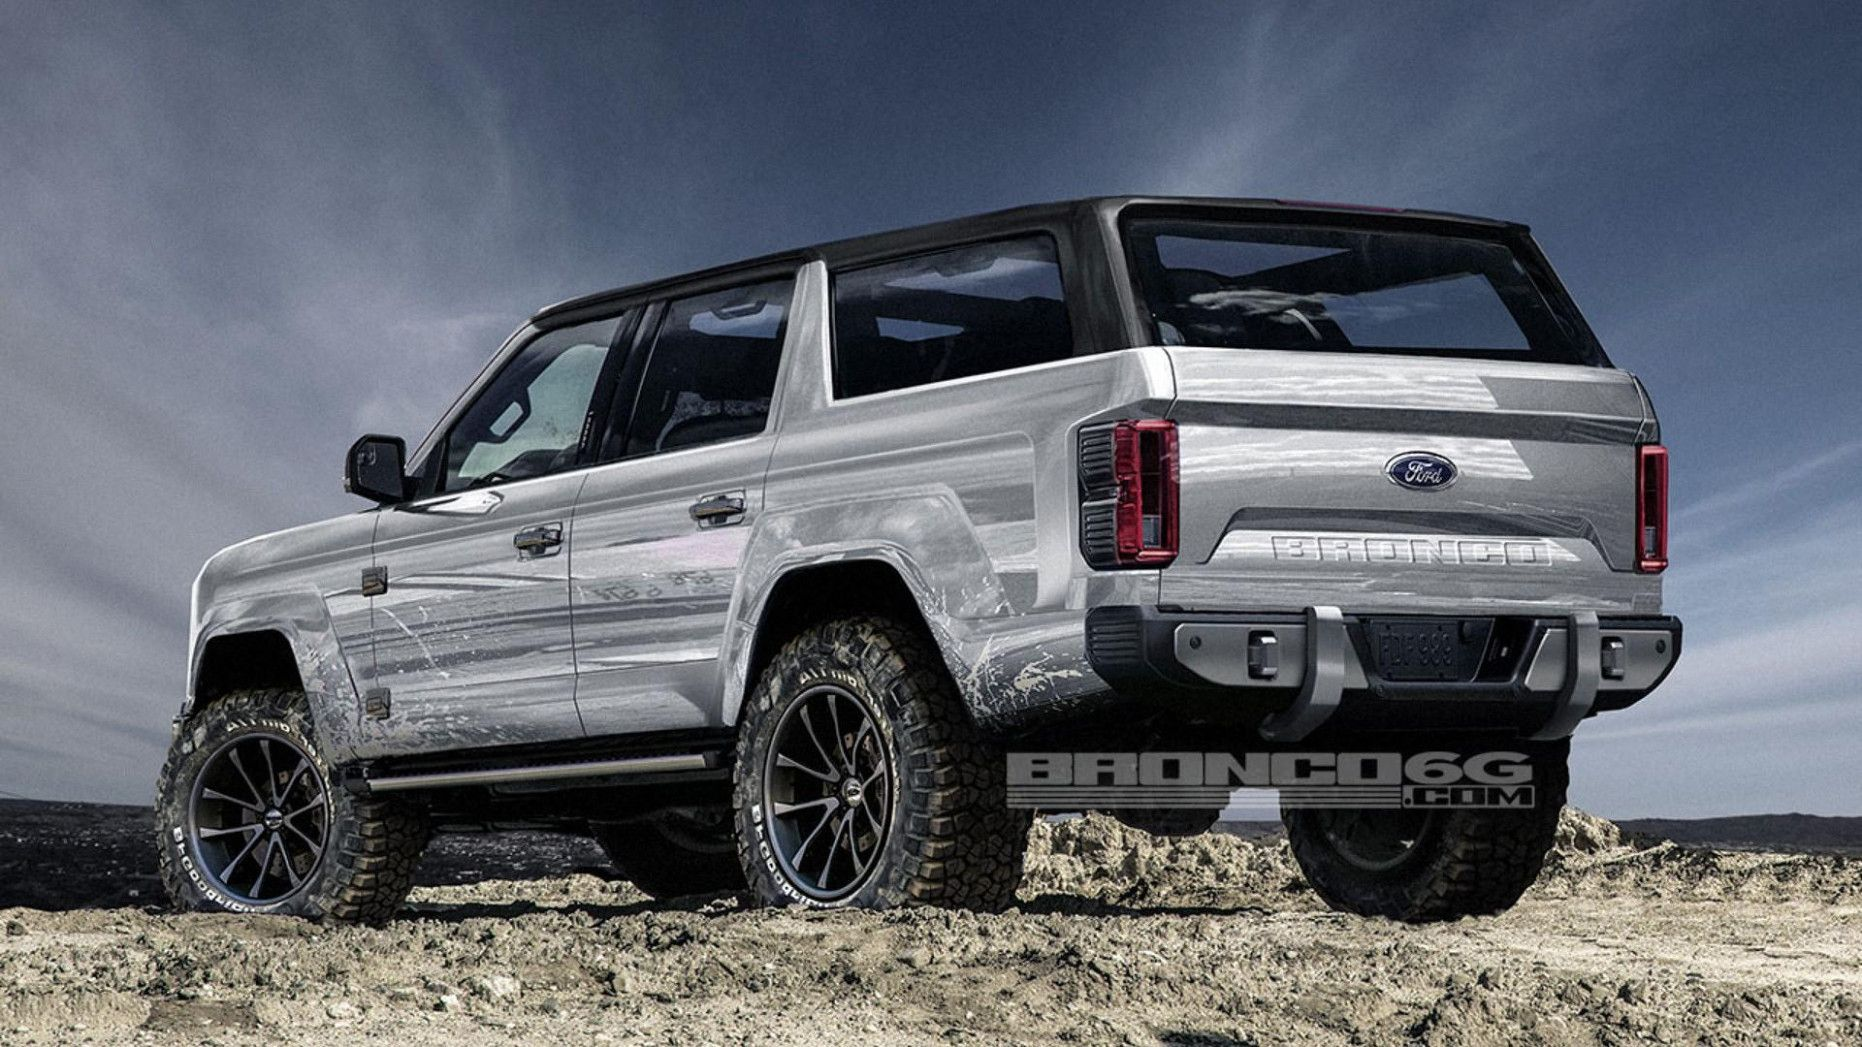 2020 Ford Bronco For Sale New Model And Performance Ford Bronco Ford Bronco Concept 2019 Ford Bronco